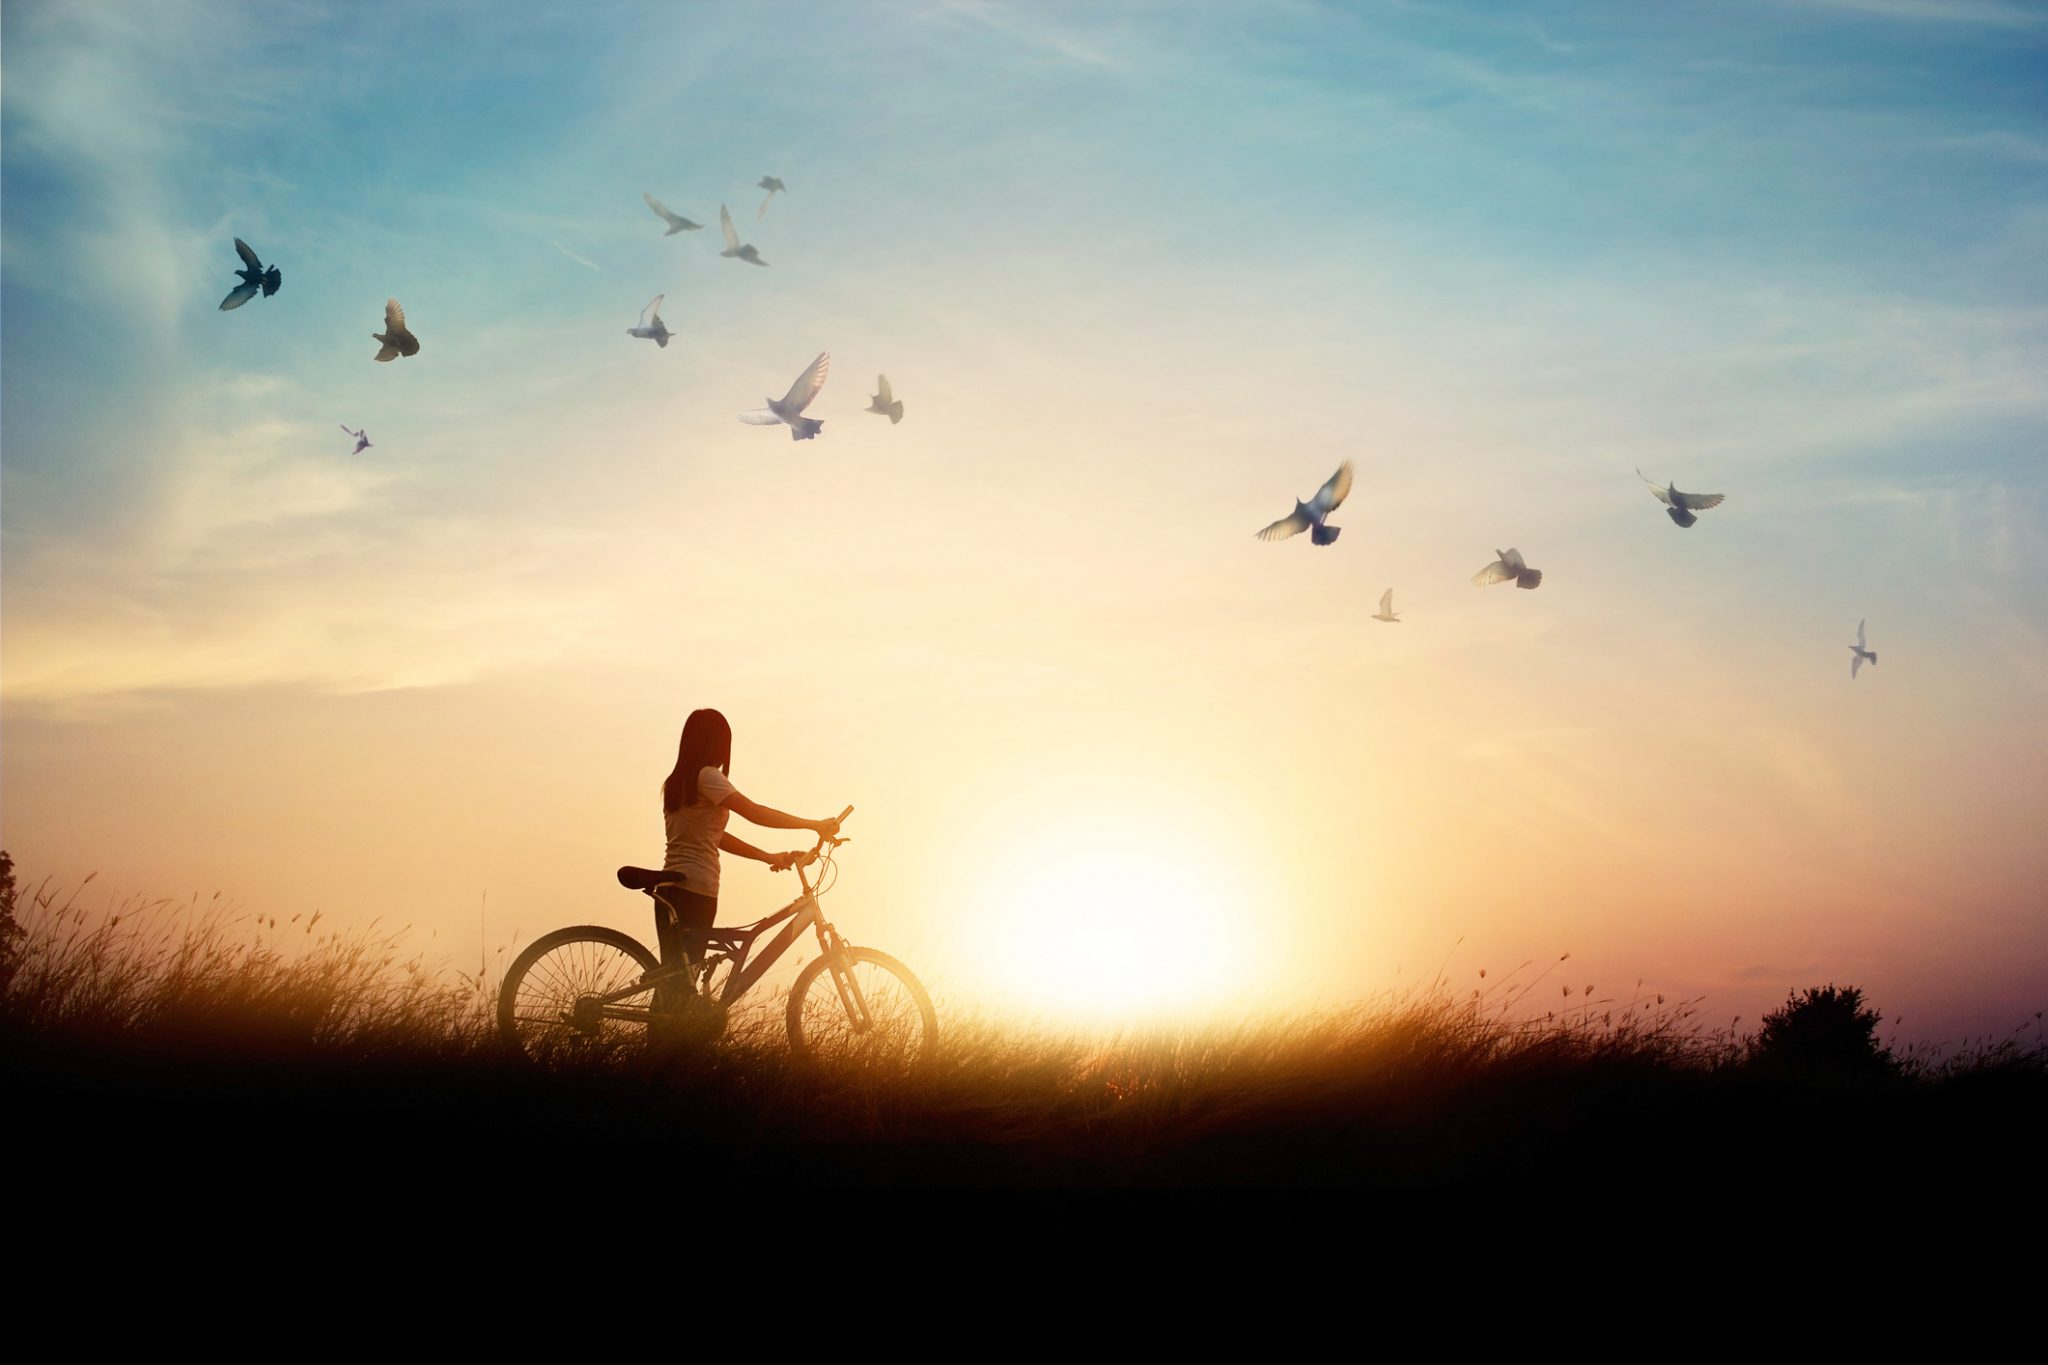 Lonely woman standing with bicycle on road of paddy field among flying birds and sunset background